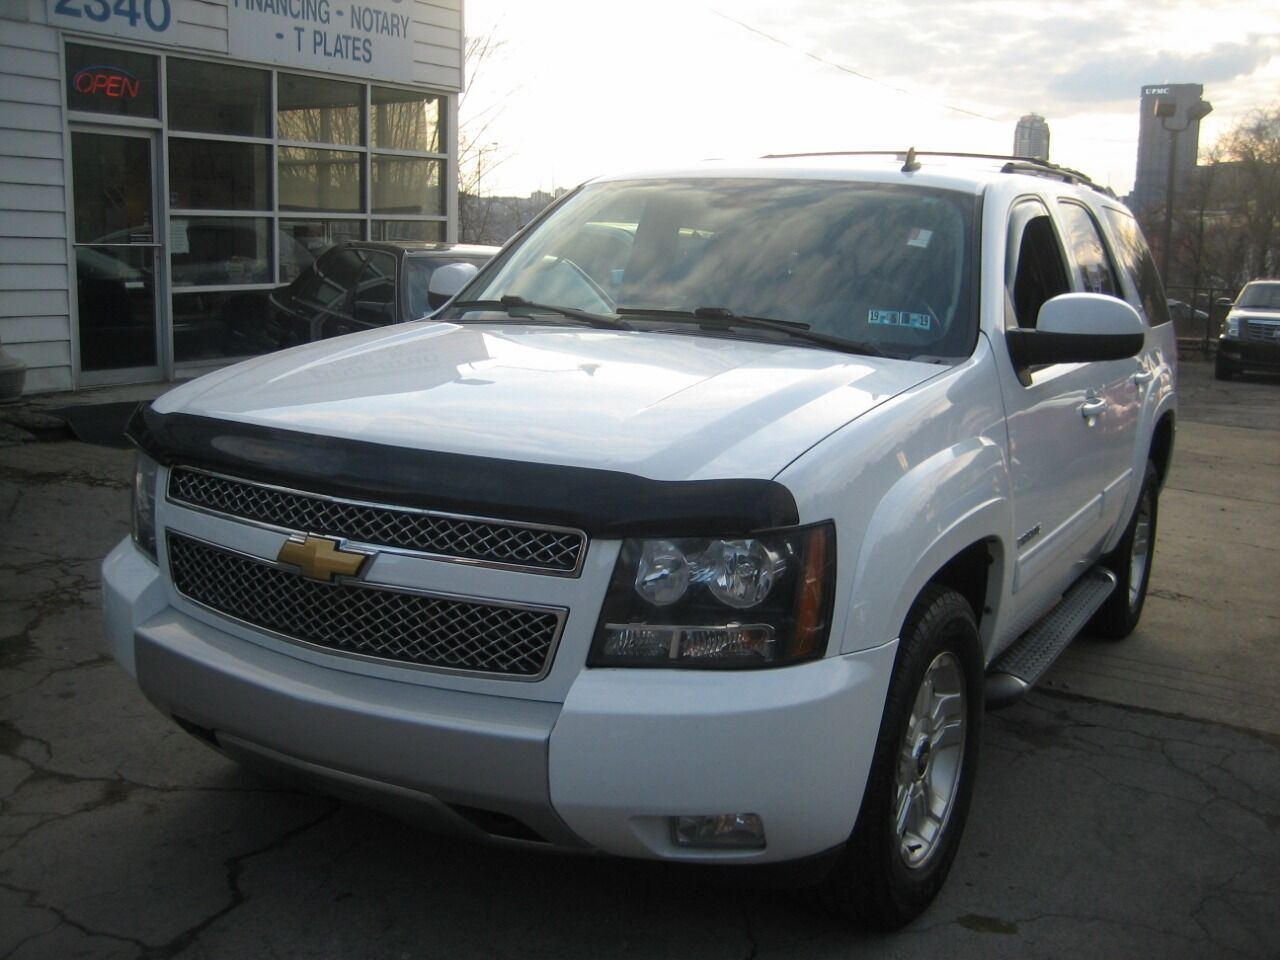 used chevrolet tahoe for sale in pittsburgh pa carsforsale com used chevrolet tahoe for sale in